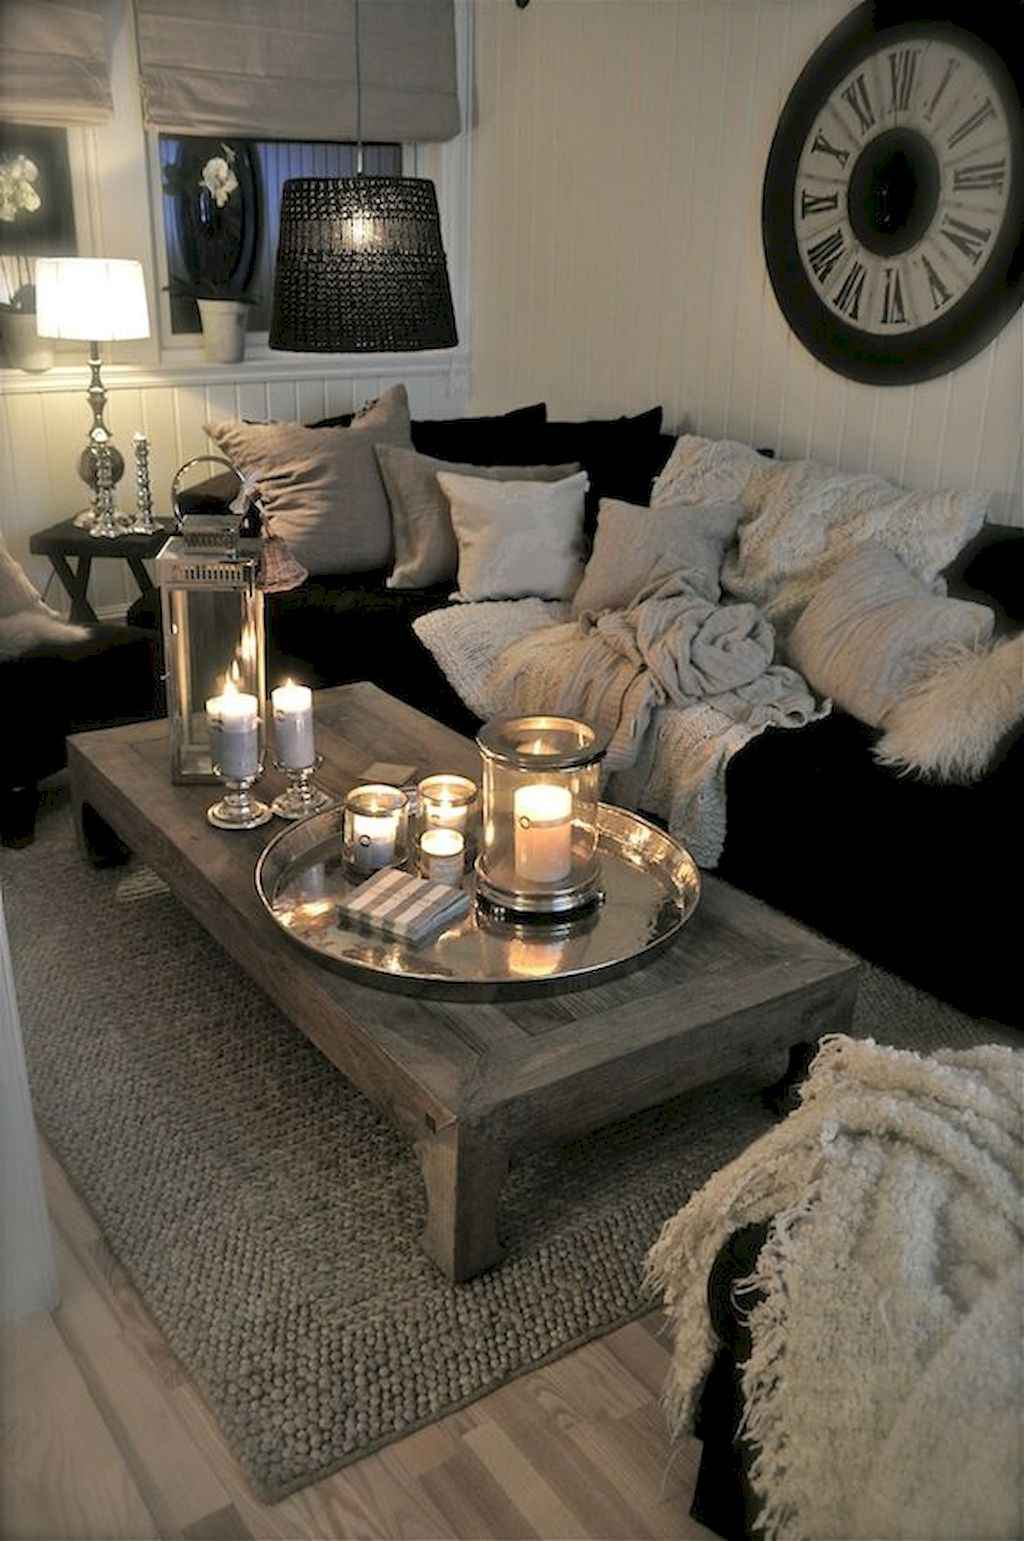 Clever college apartment decorating ideas on a budget (60)